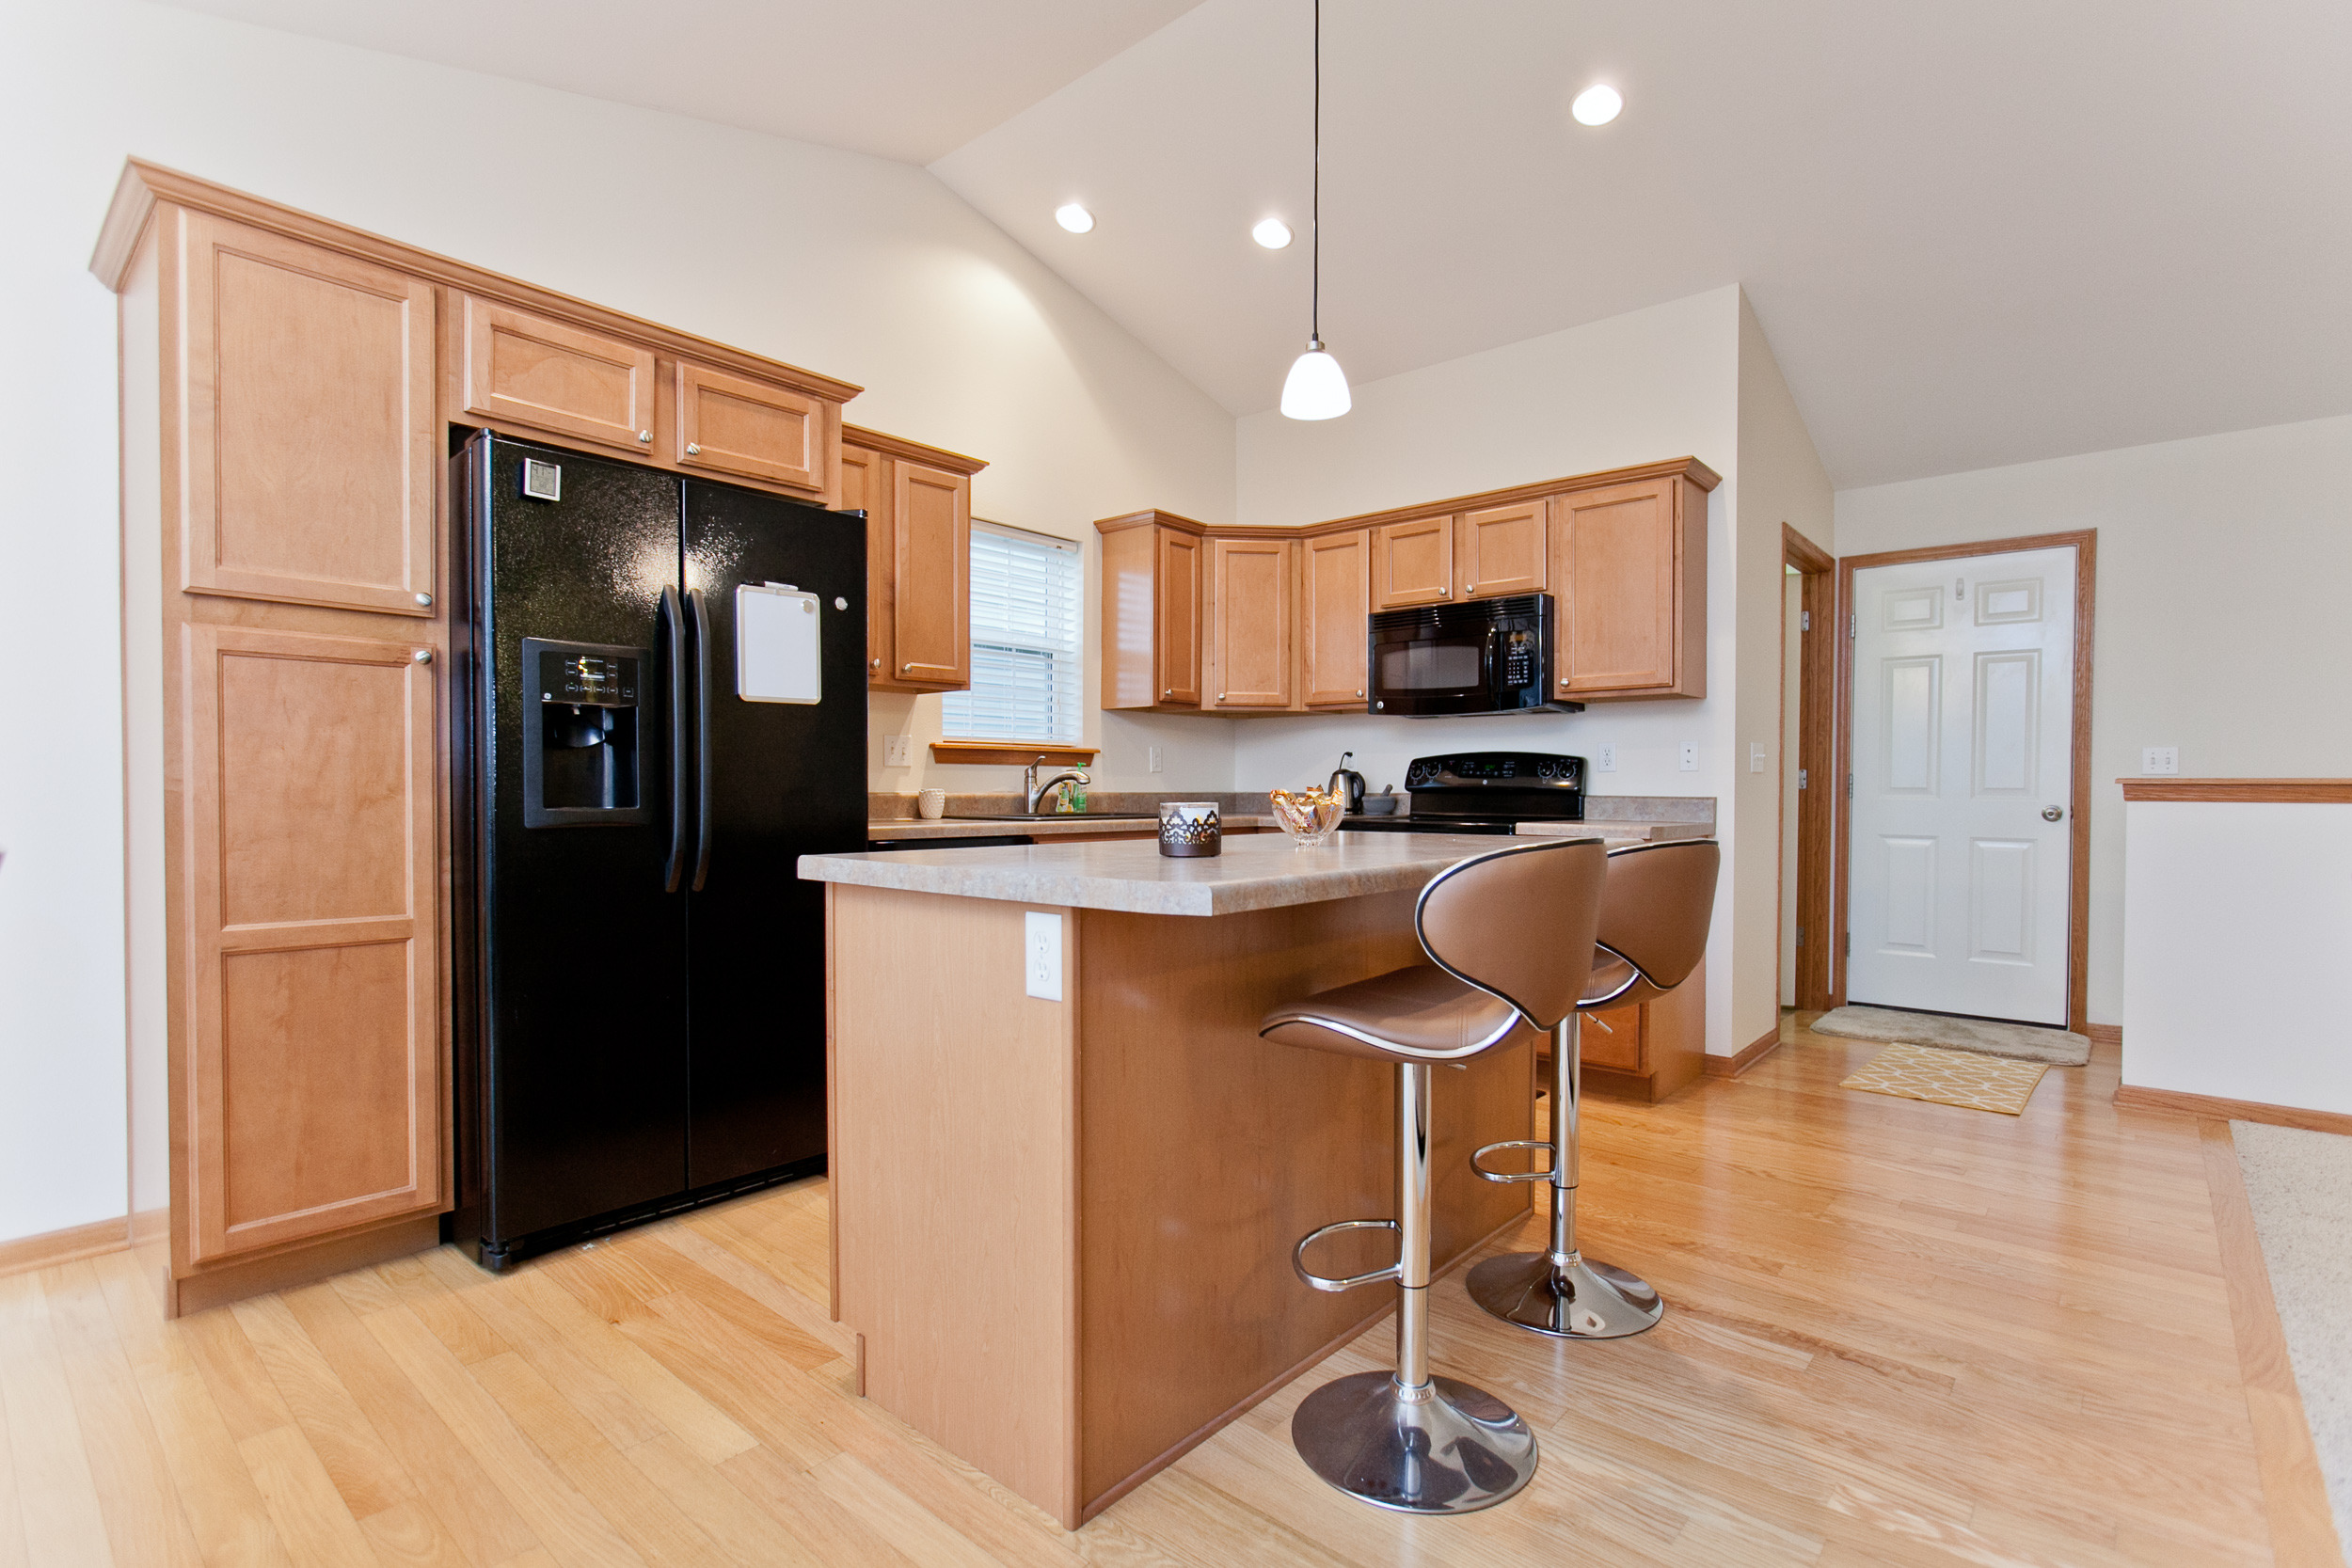 Kitchen at 115 Lily Pond Rd North Liberty, Iowa 52317